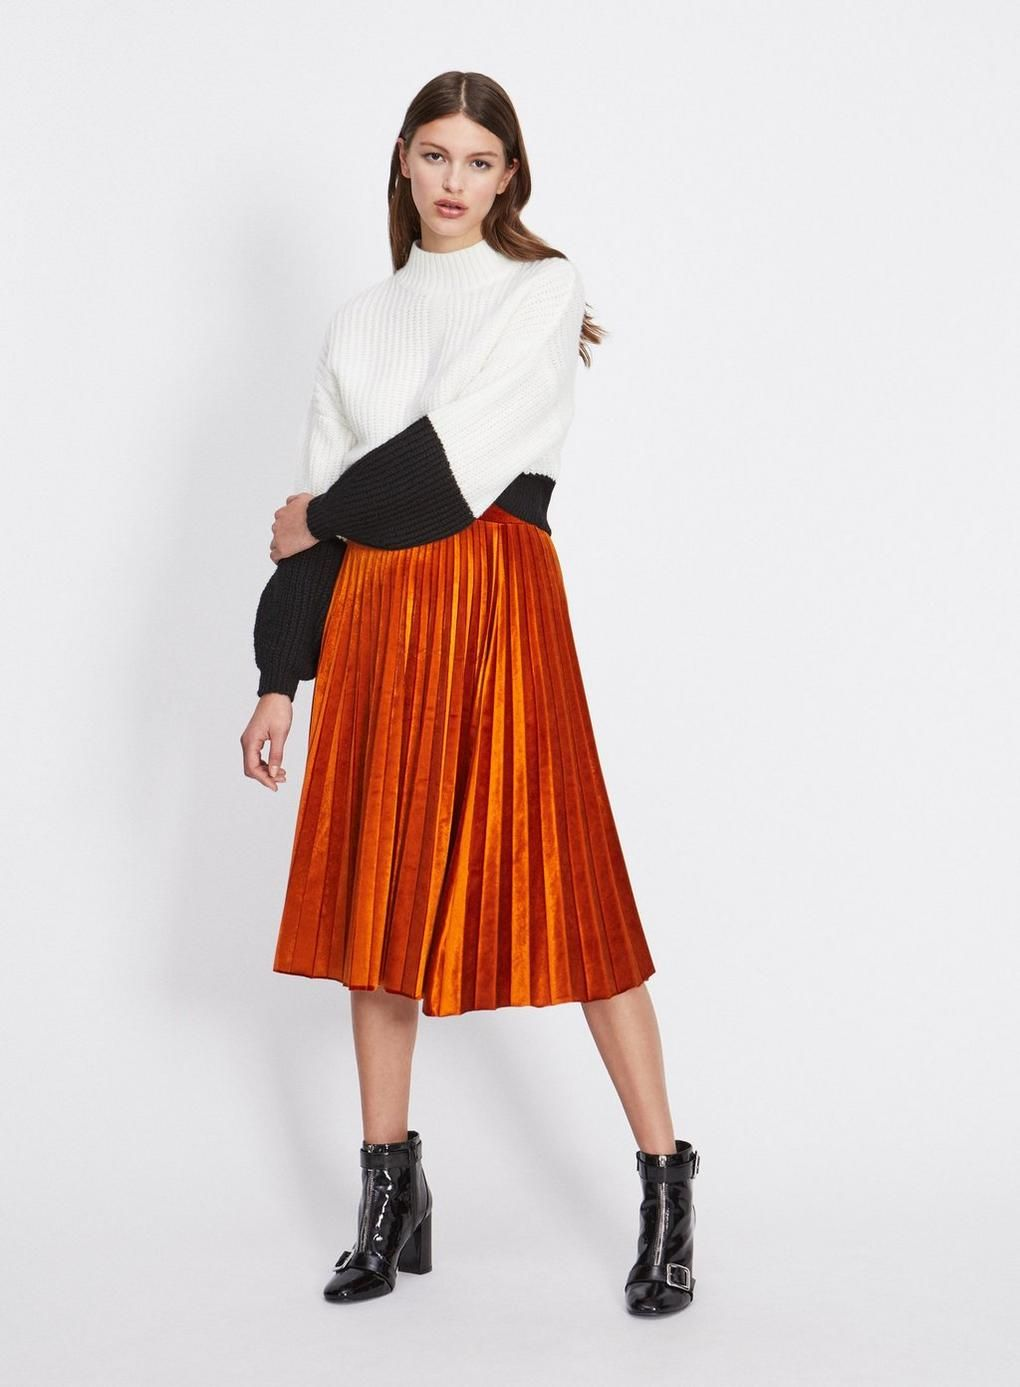 Rust Velvet Pleated Skirt - Must Haves - Clothing - Miss Selfridge 1bfc3324d81